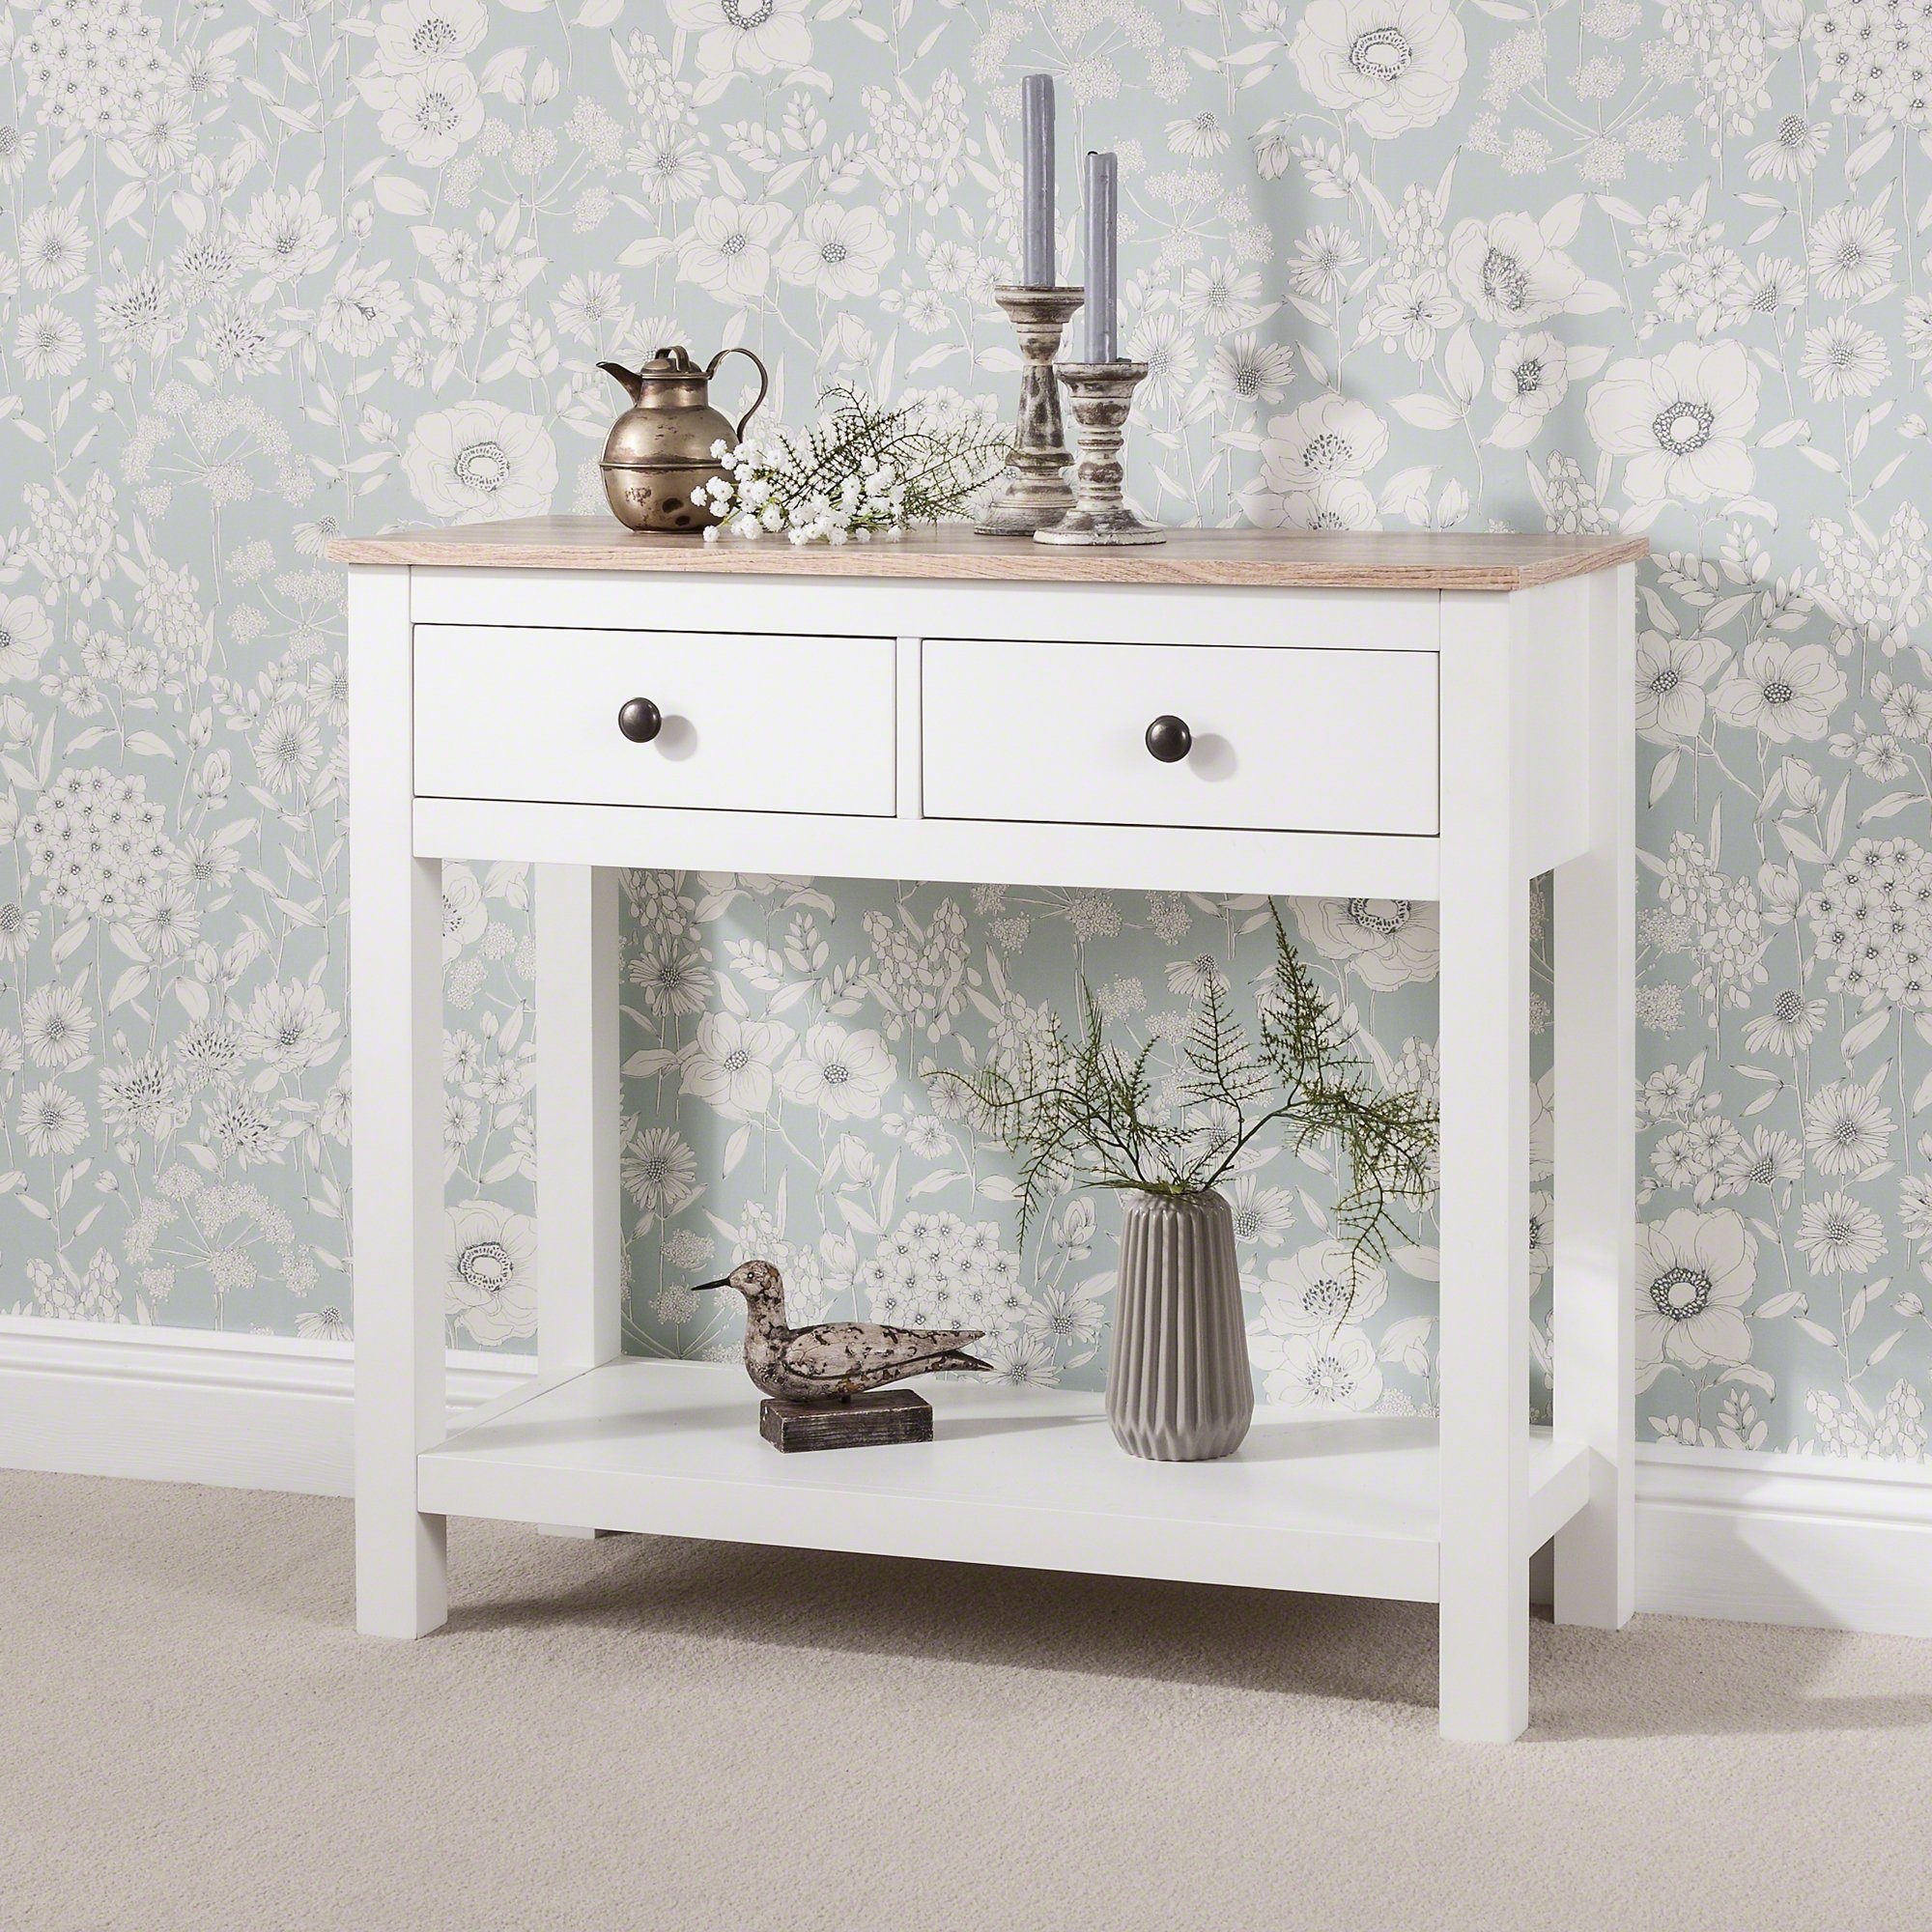 Table Console  - 2 Tiroirs - Laura James